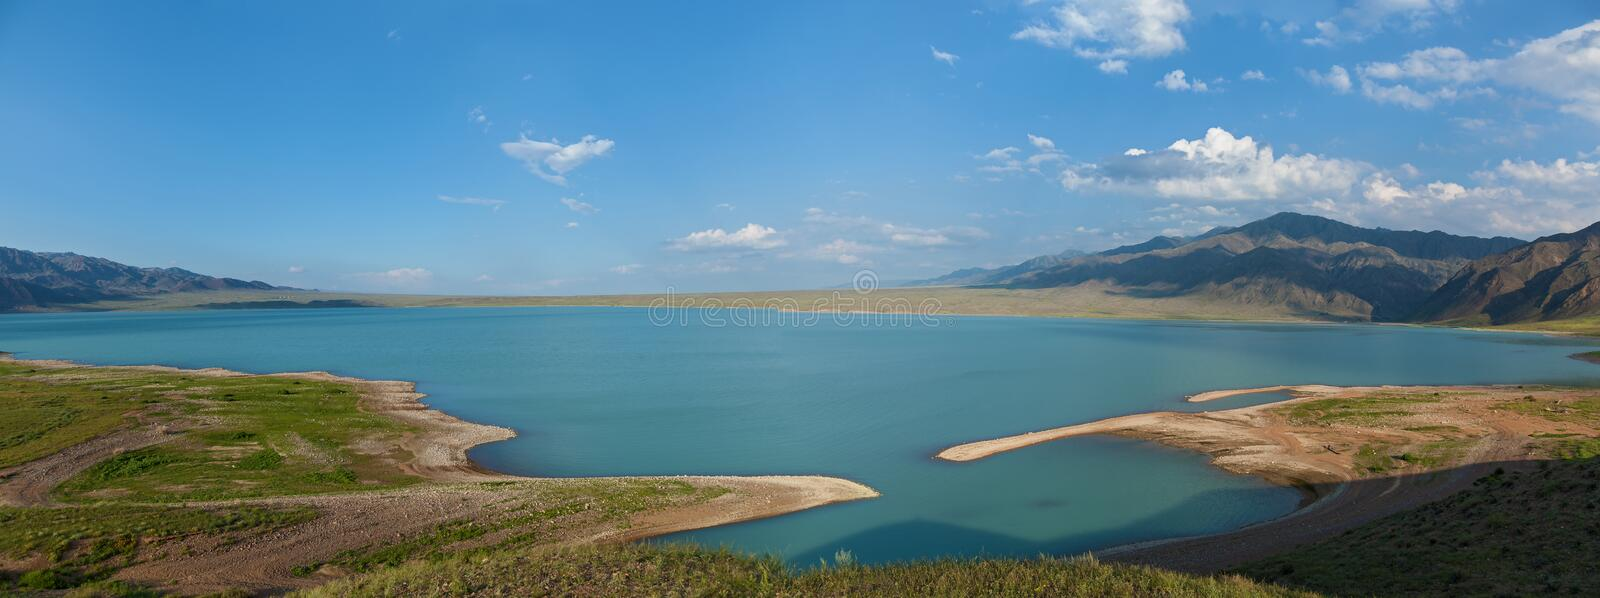 Bartogai dam on a mountain river Chilik, Kazakhstan upcast of wa stock photo